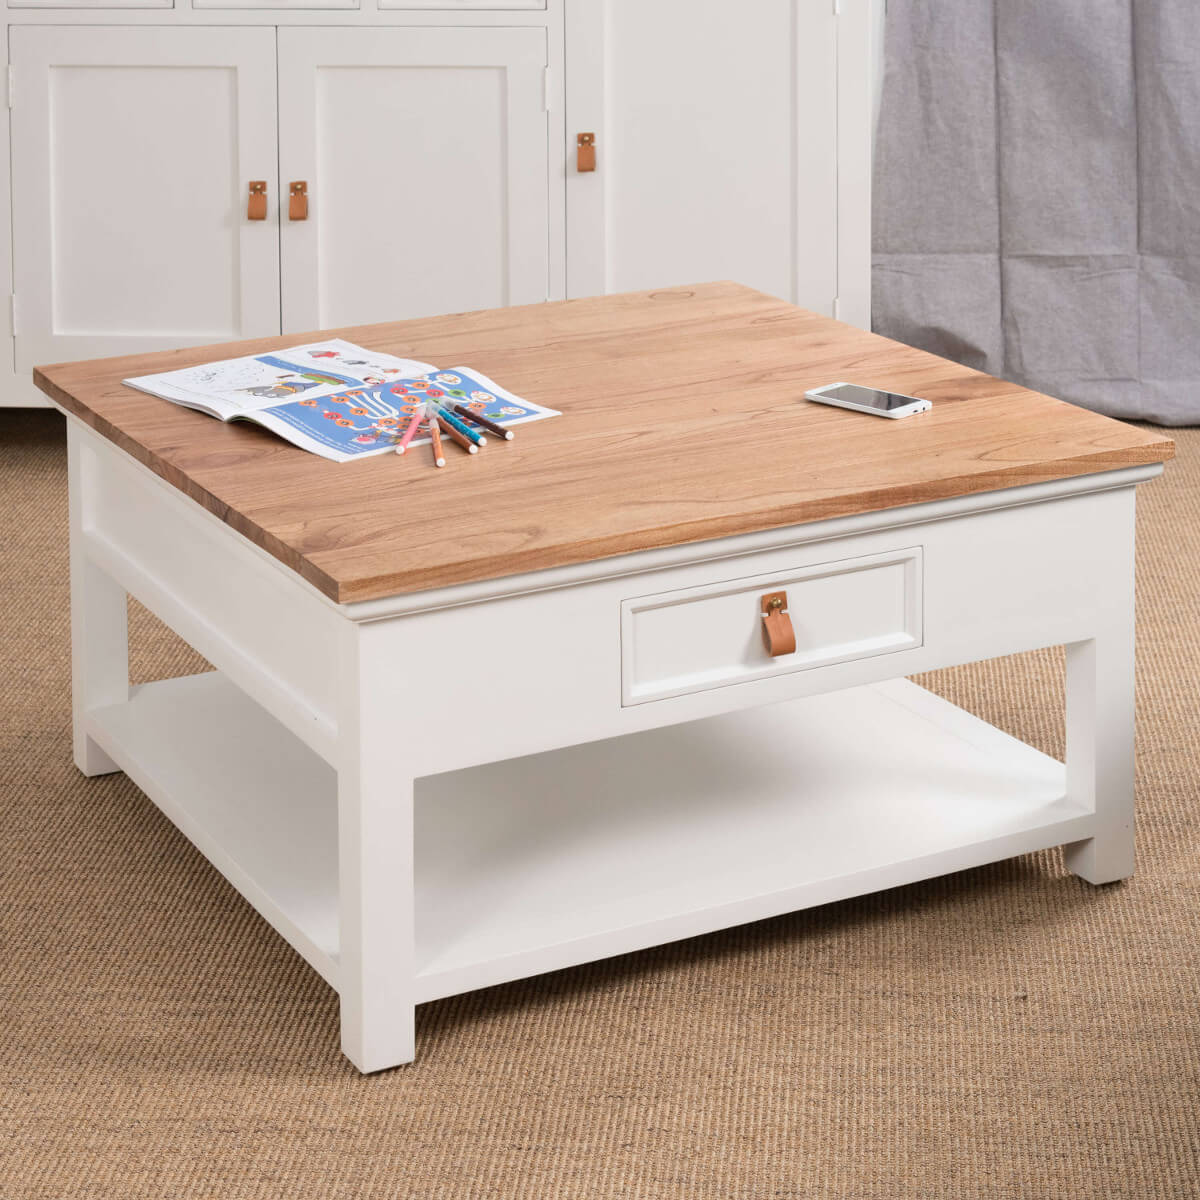 Table basse blanche table basse acajou carr e bois - Table basse de salon en bois ...